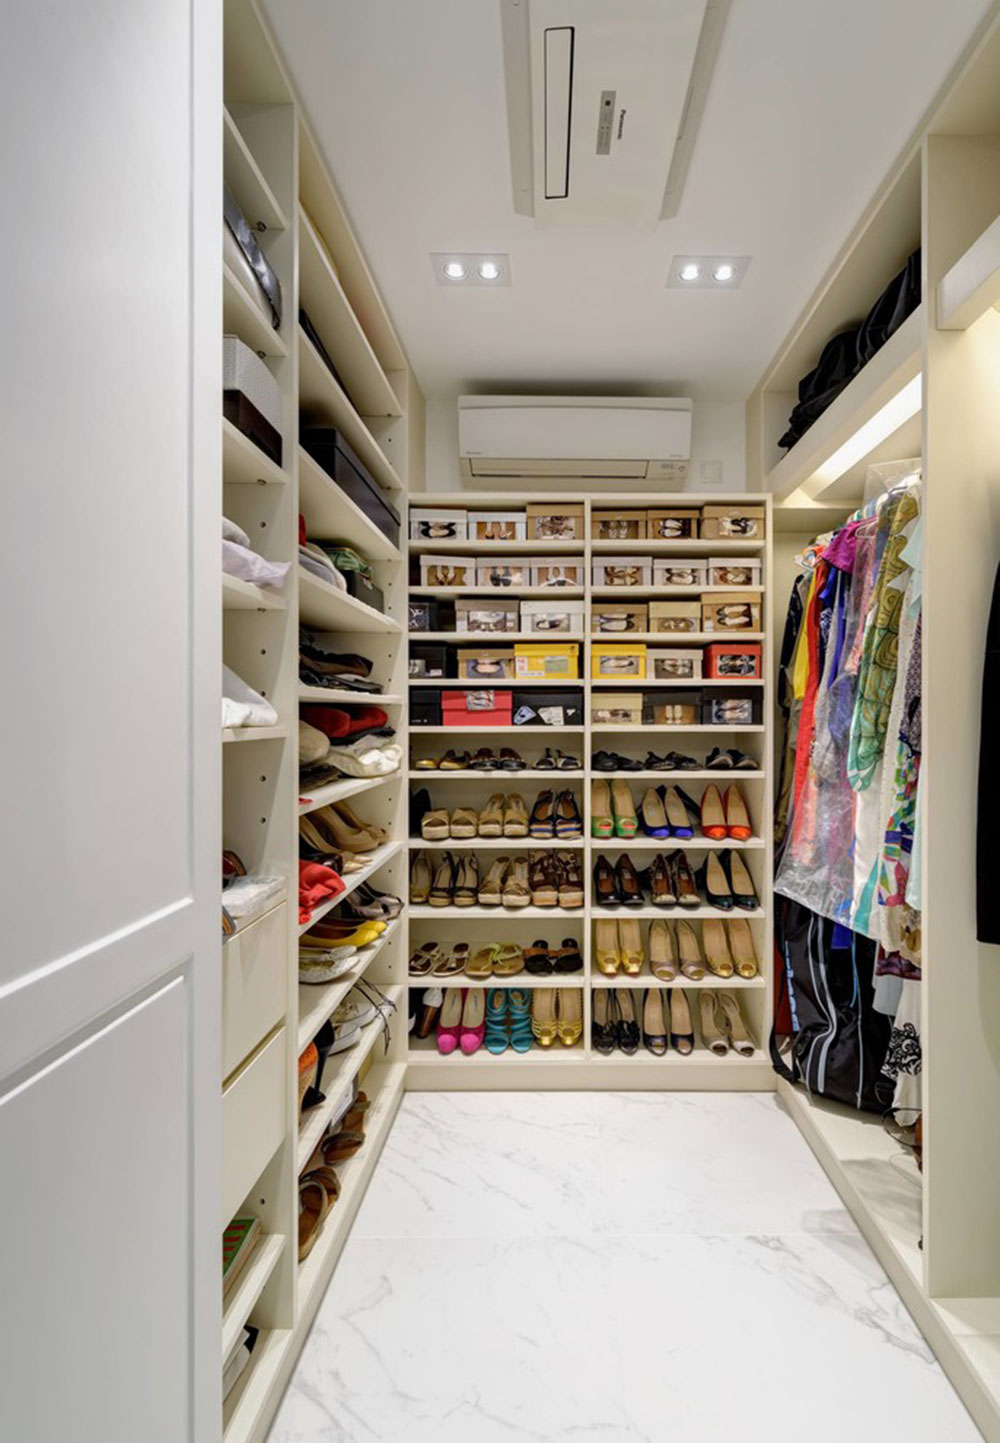 Shoe Storage Ideas For Better Organizing - Shoe cabinets design ideas